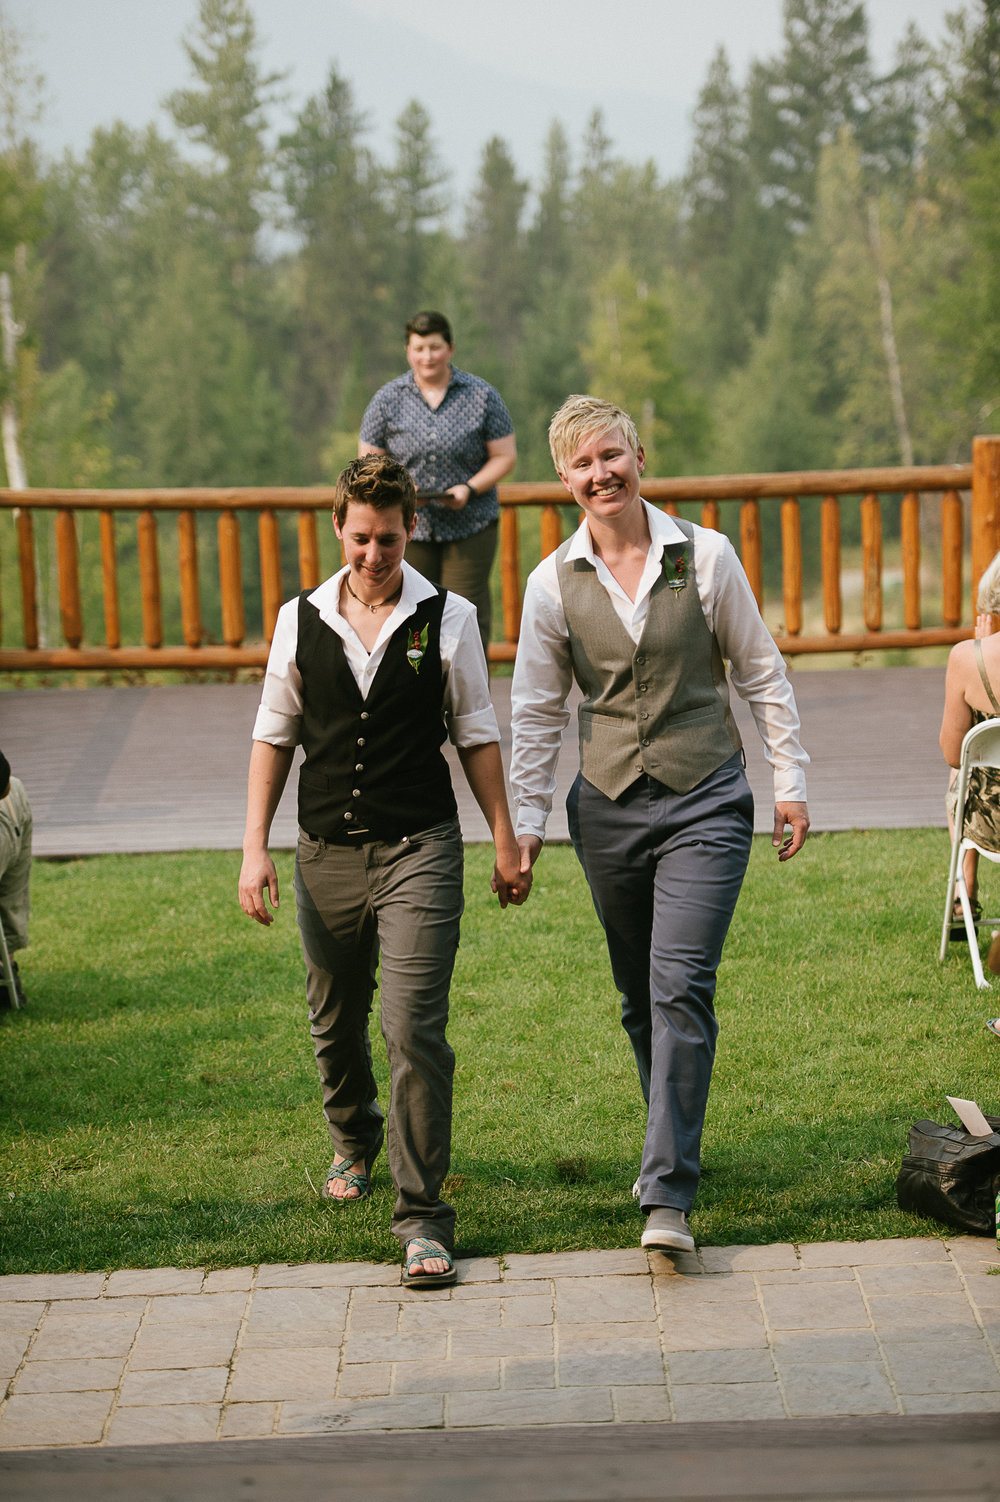 Glacier Montana Wedding_Elly Maurer + Frankie Dashiell Wedding_Beautiful Outdoor Wedding_Kelsey Lane Photography-5016.jpg